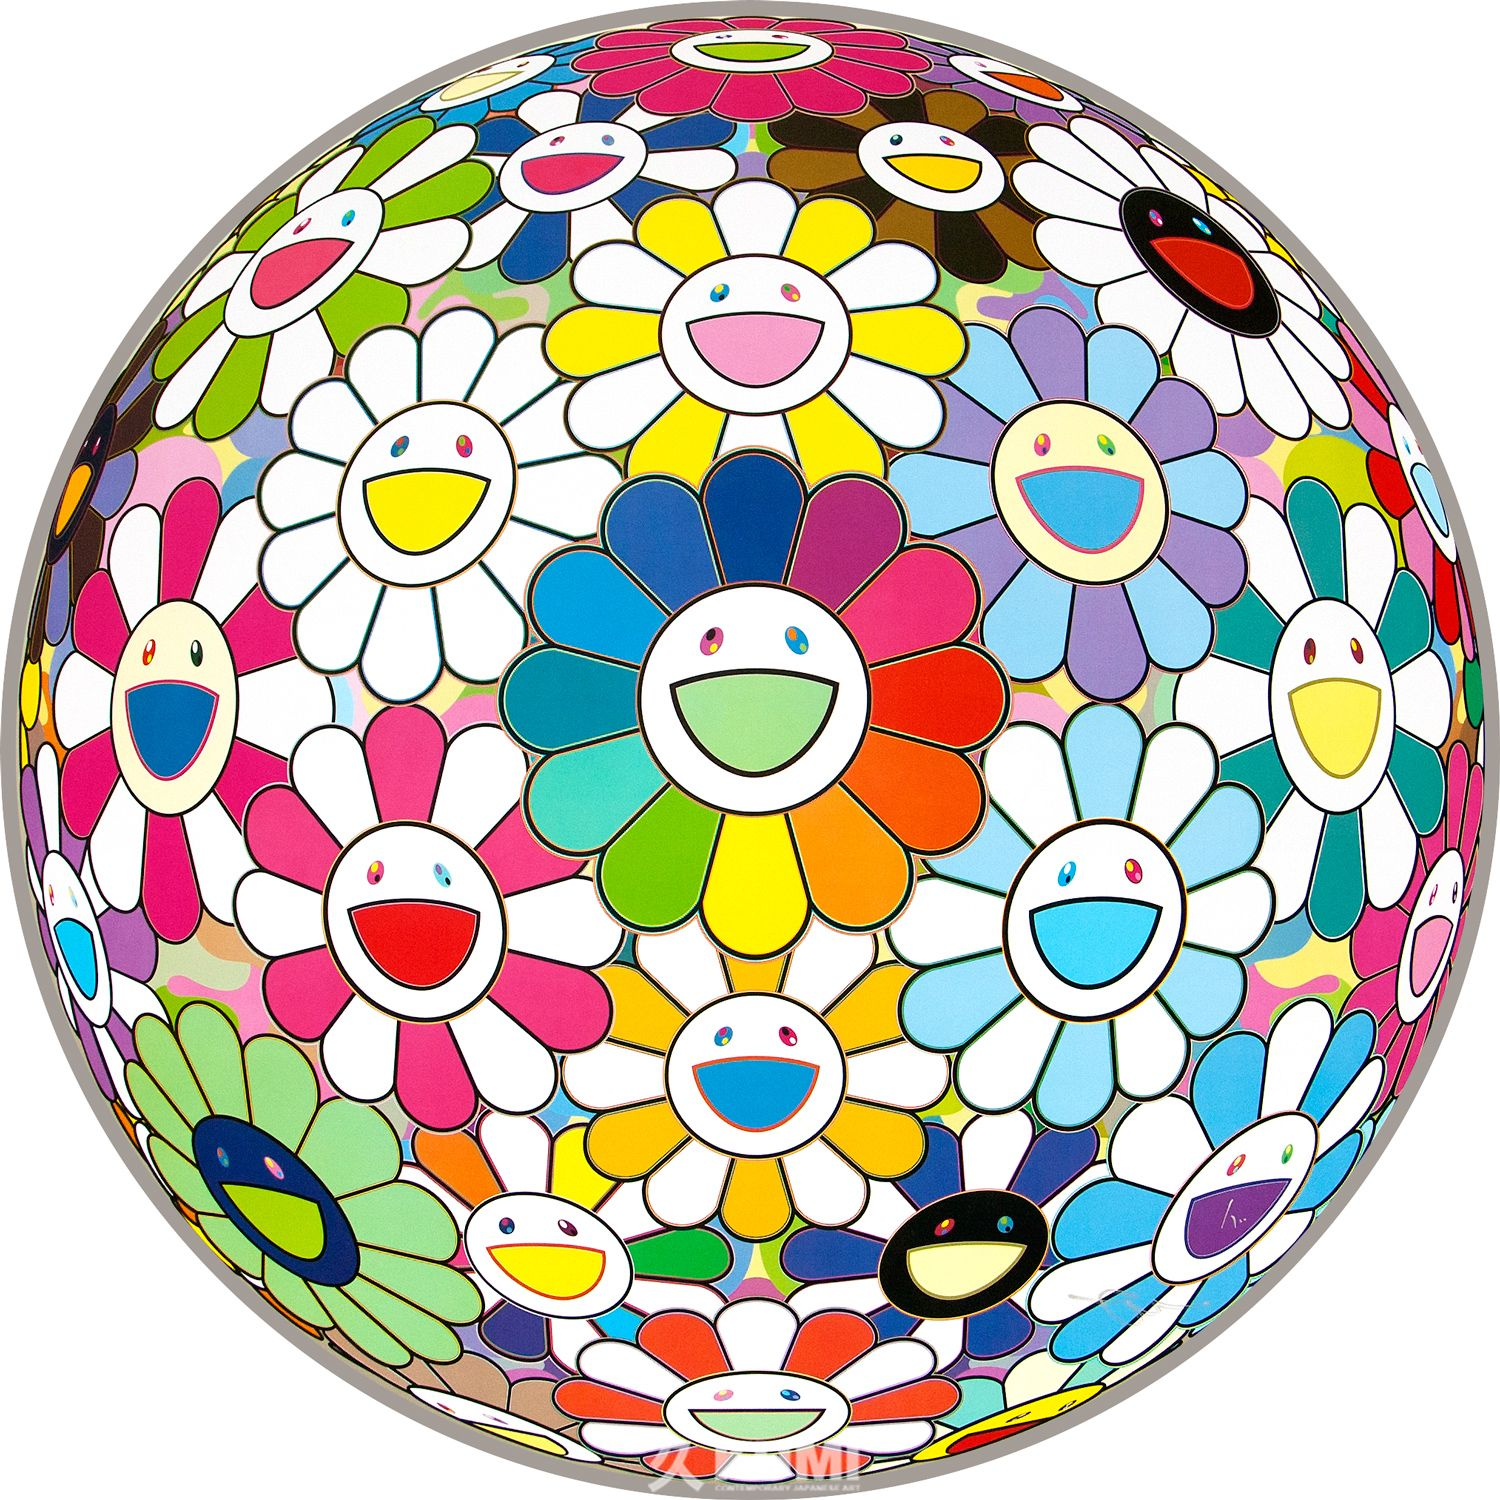 Flower Ball (I Want to Hold You) by Takashi Murakami 村上隆